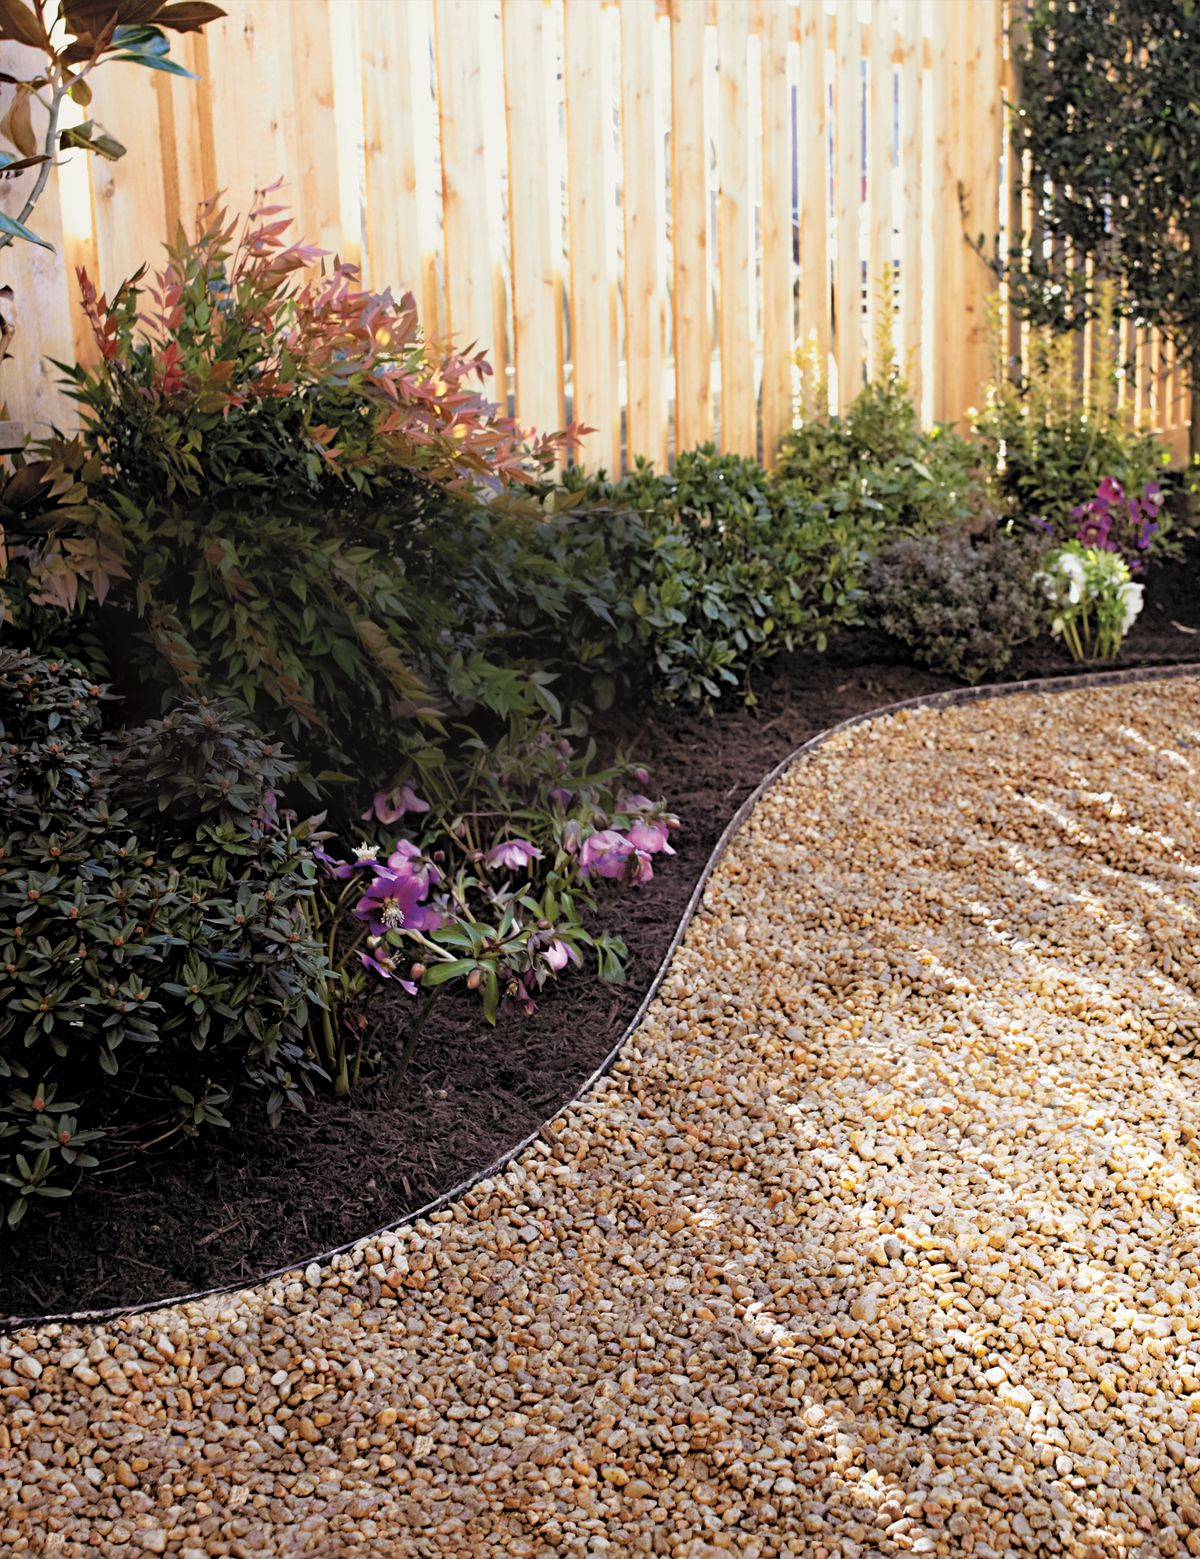 Curved gavel pathway next to plants and a fence.